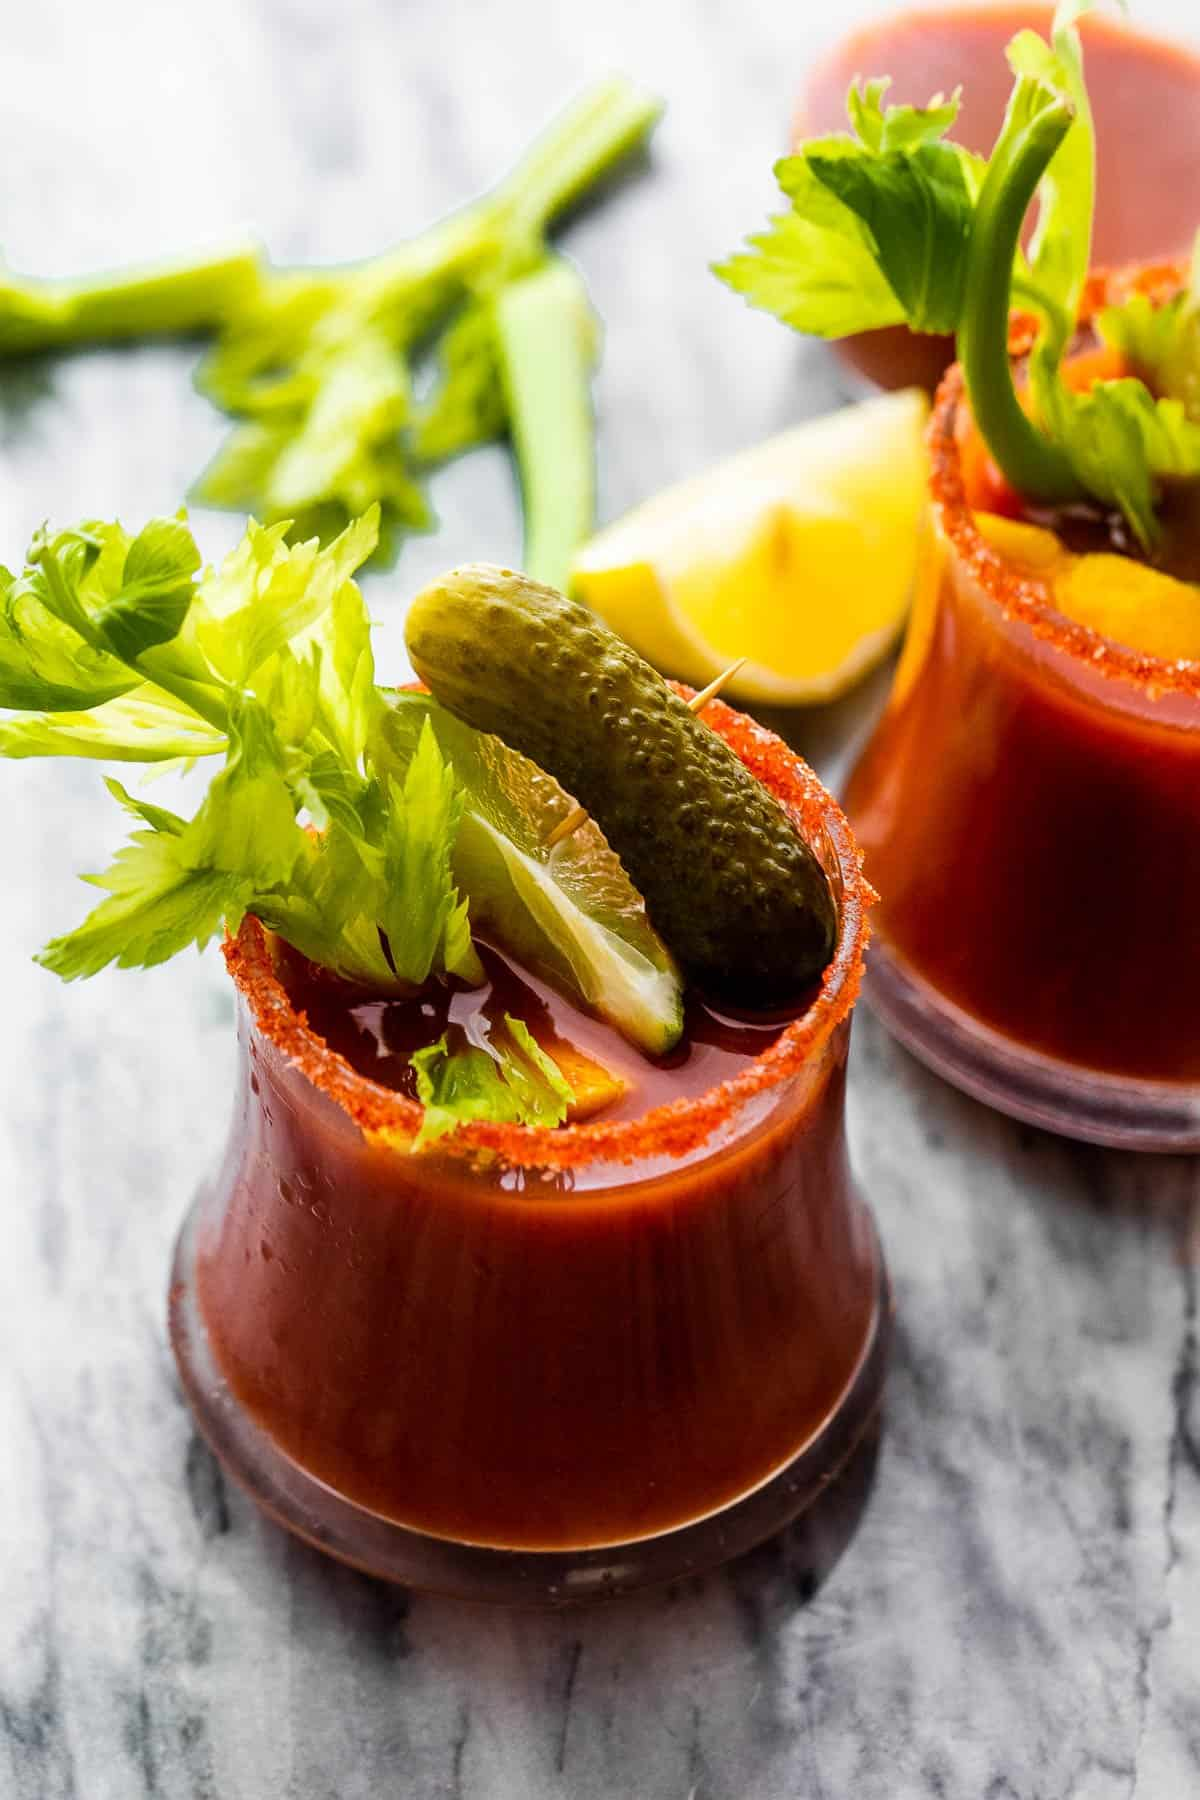 Bloody Mary cocktail garnished with pickles and celery sticks